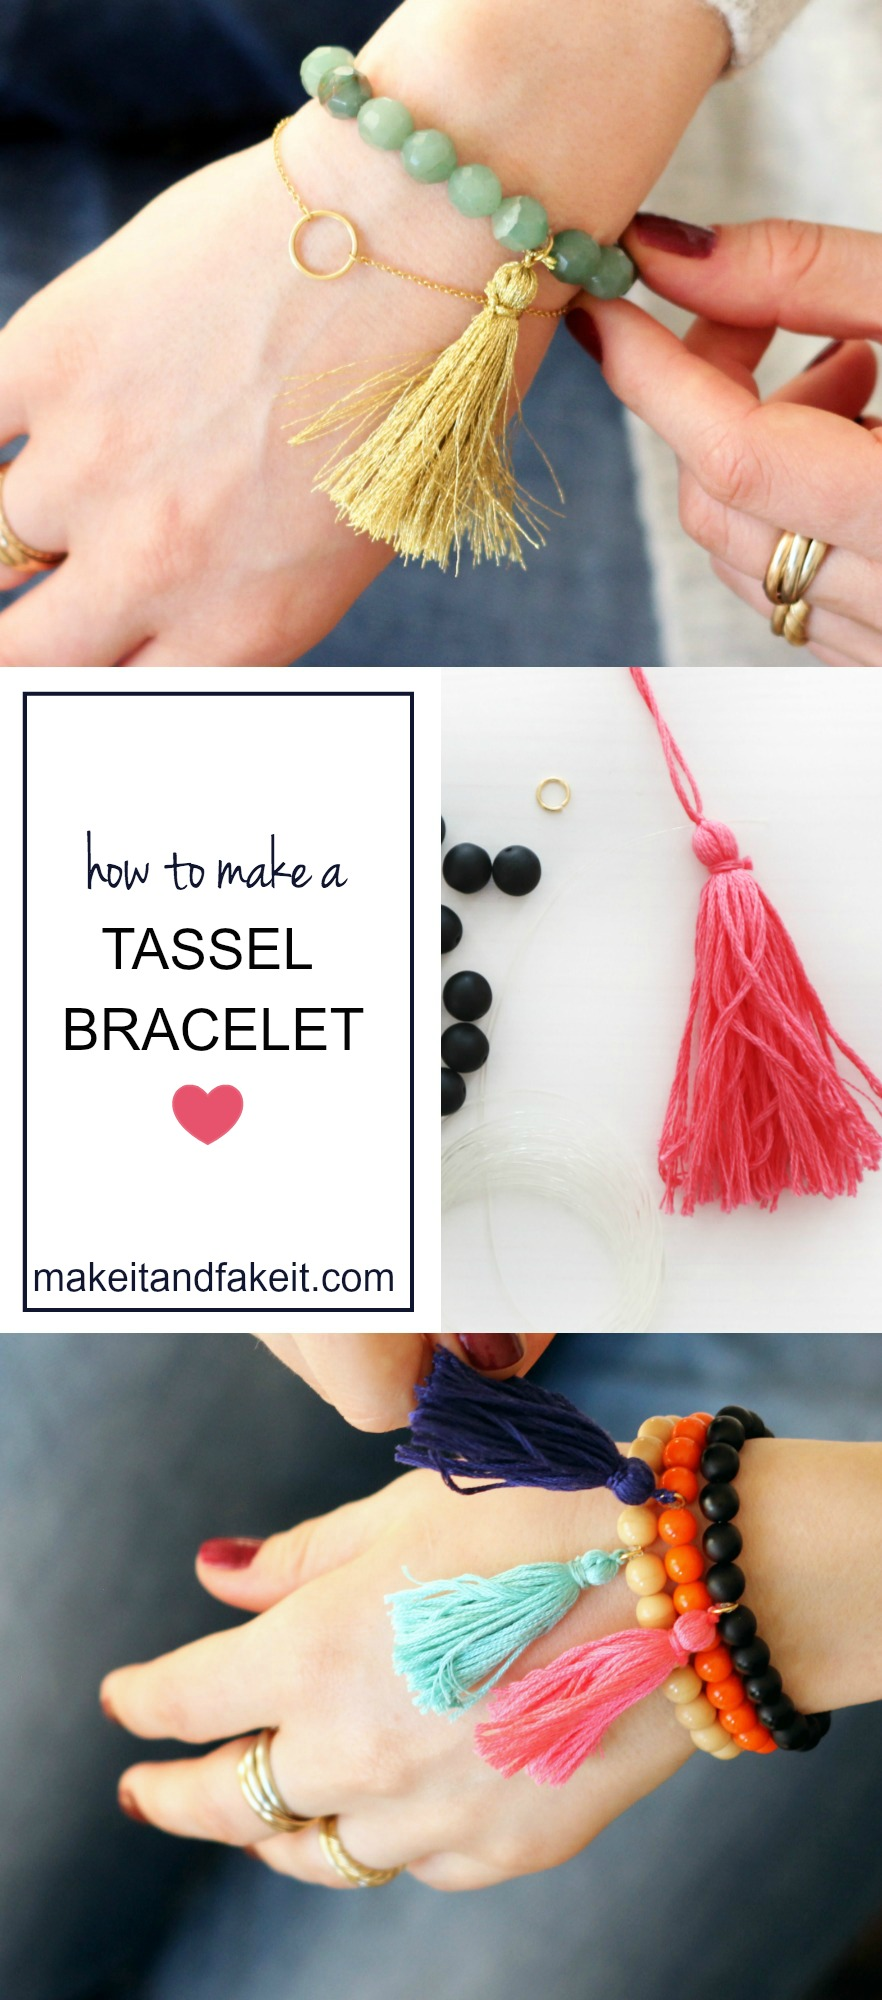 How to Make a Tassel Bracelet by Make It and Fake It